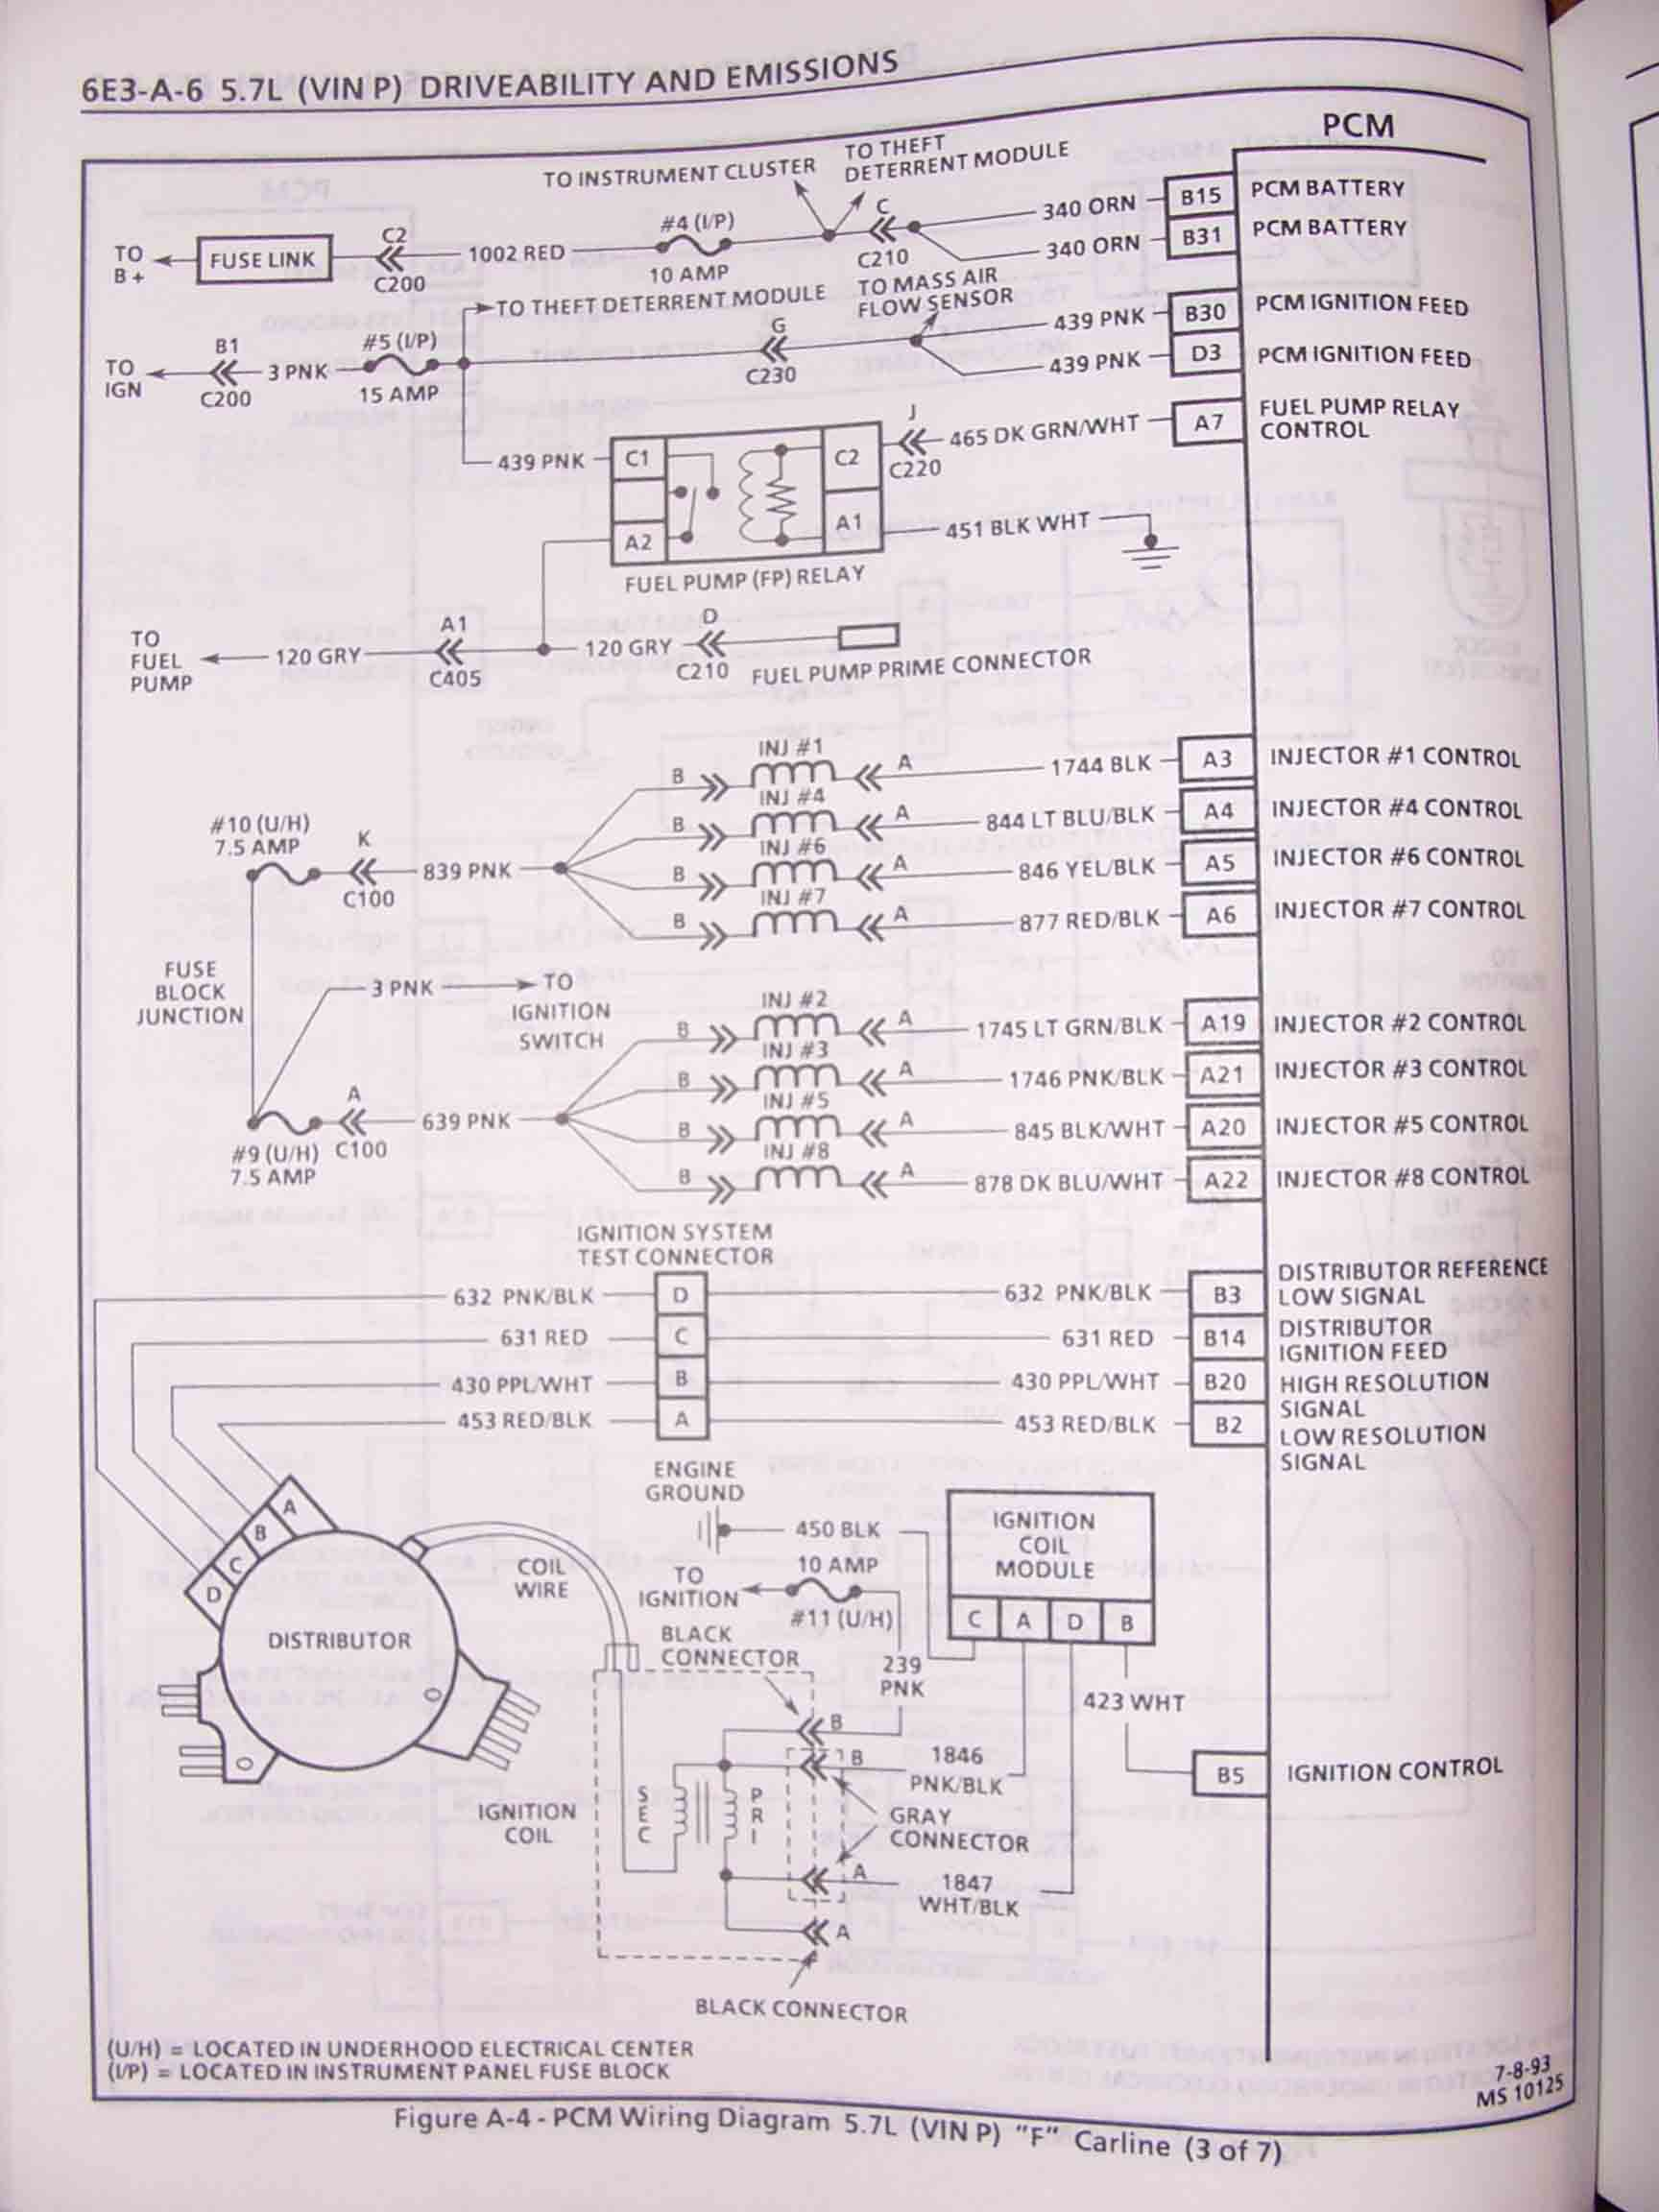 95 Firebird Wiring Diagram Vss Portal 1969 1995 F Body Wire Harness Schematics Rh Lt1swap Com 1992